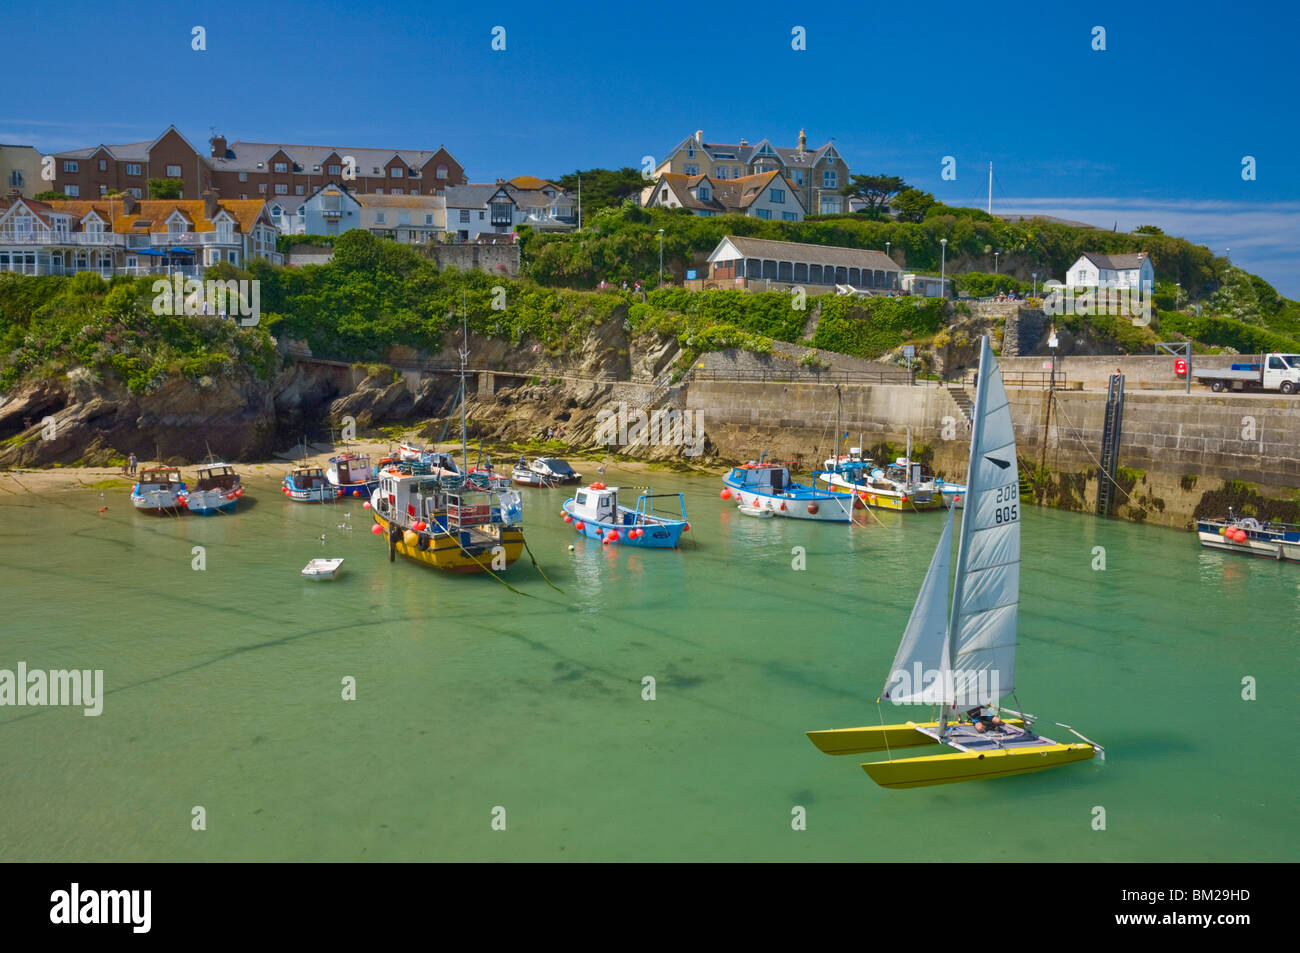 Small fishing boats and a catamaran at low tide, Newquay harbour, Newquay, Cornwall, UK - Stock Image